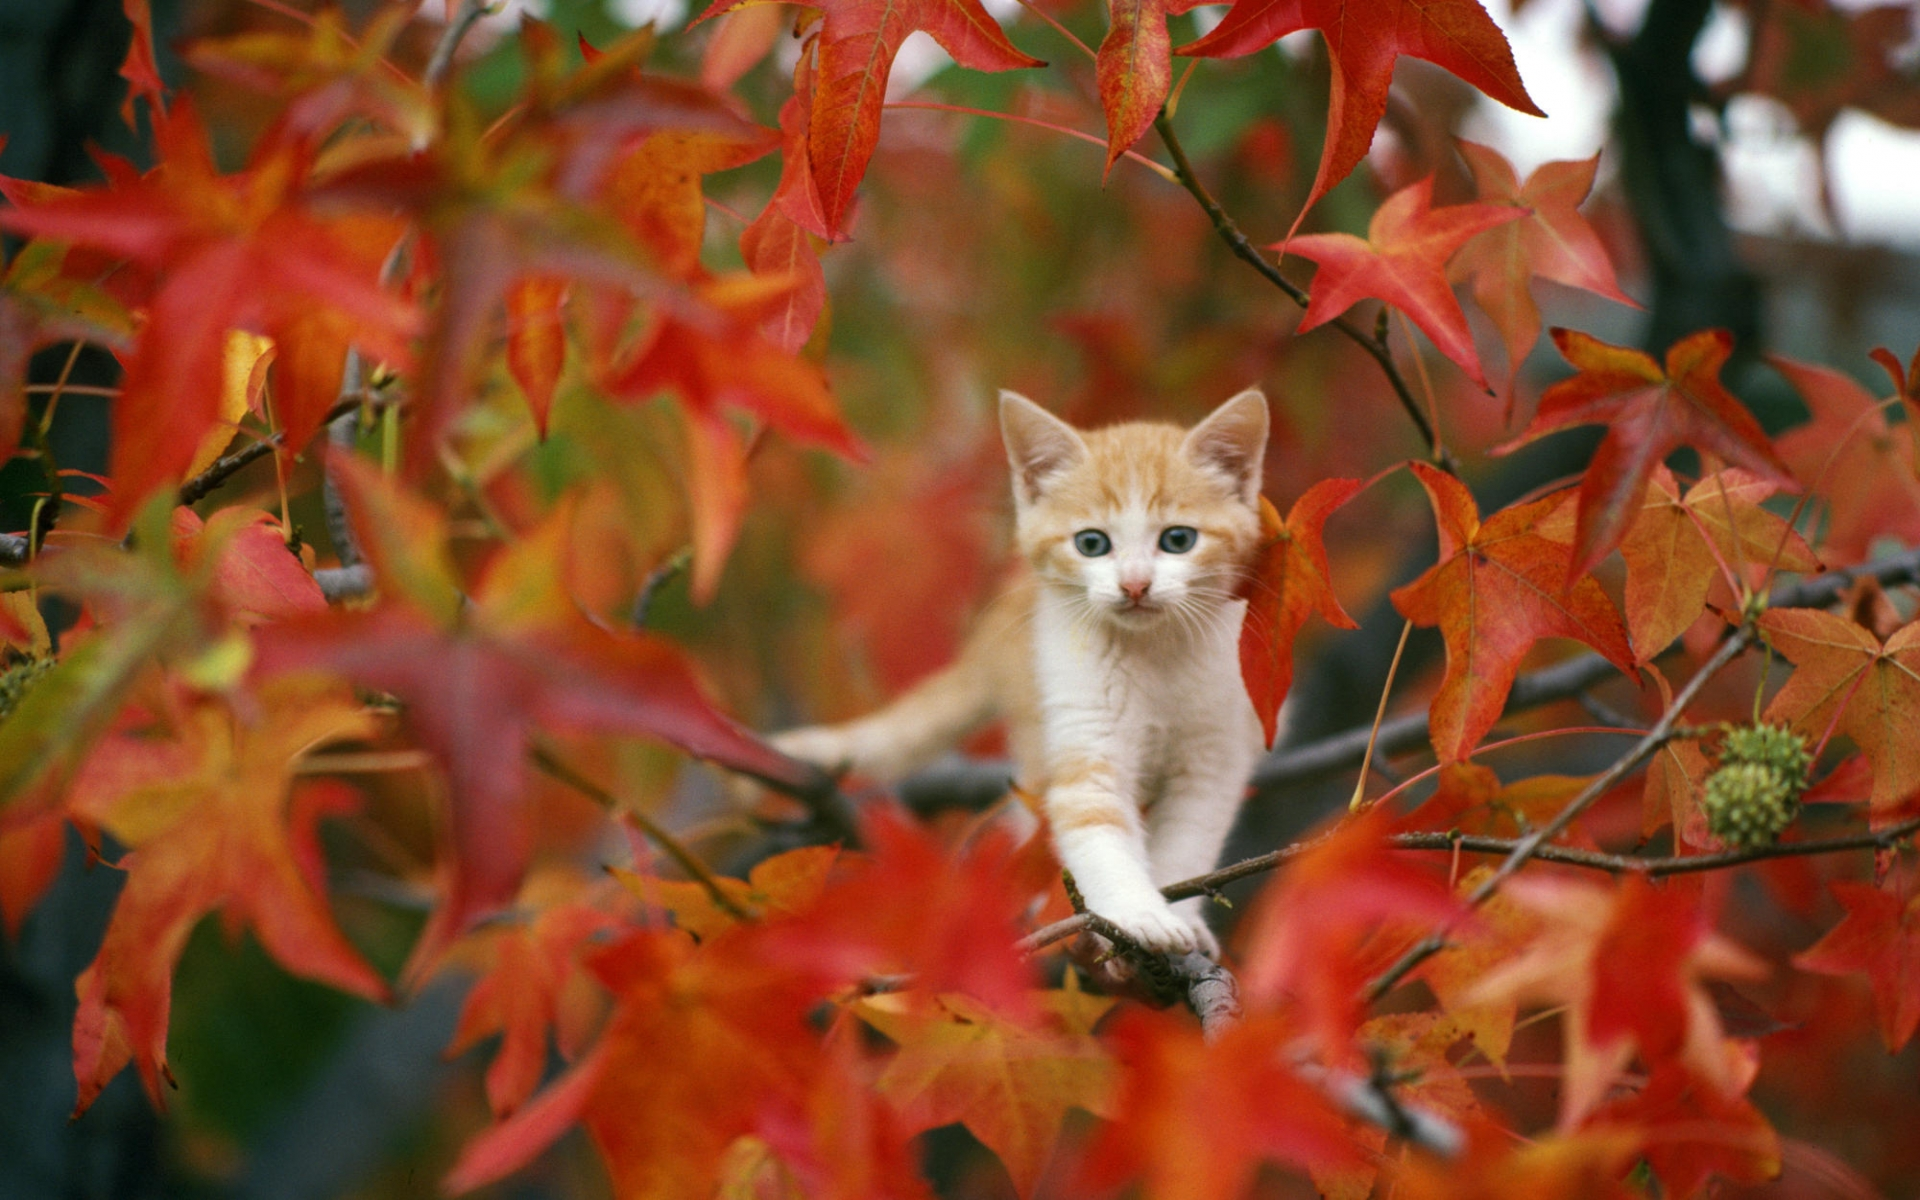 Animals cats kittens fur face whiskers trees autumn fall seasons animals cats kittens fur face whiskers trees autumn fall seasons leaves cute wallpaper 1920x1200 26338 wallpaperup voltagebd Images